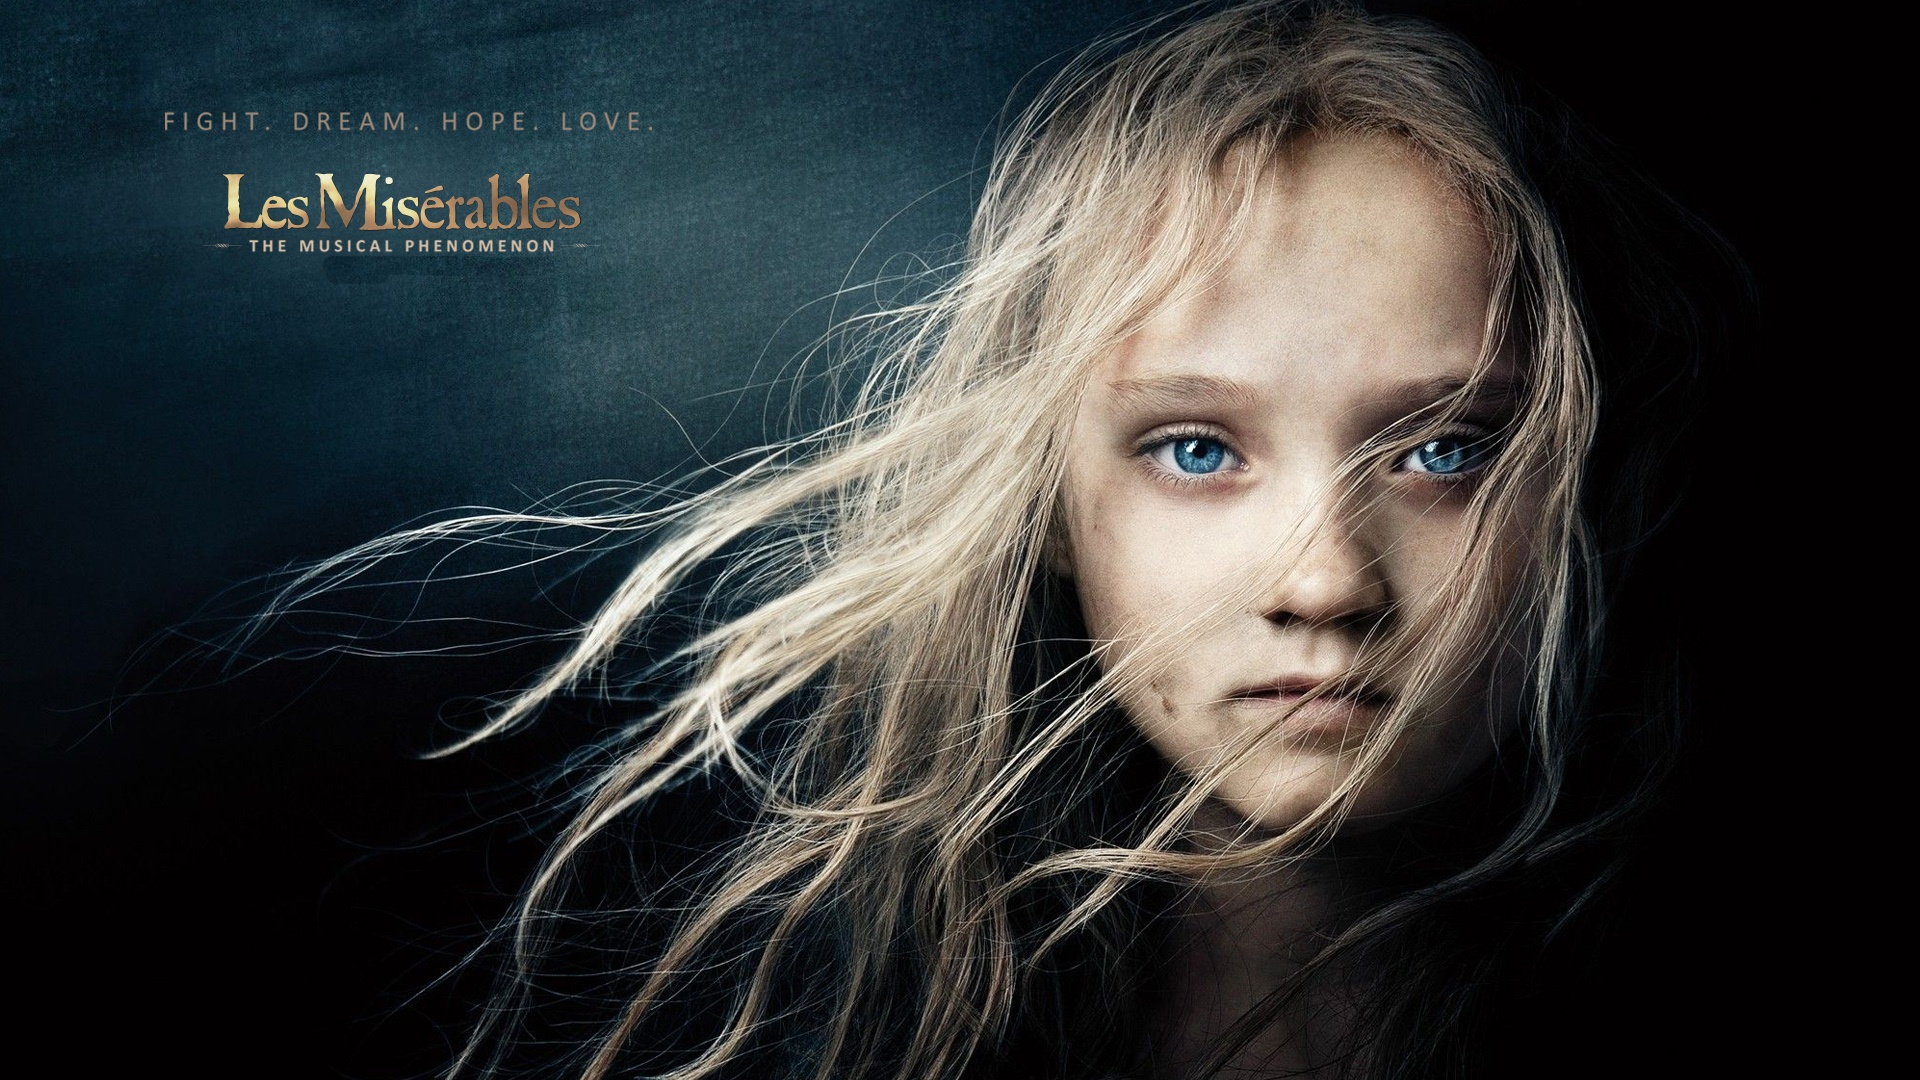 isabelle_allen_in_les_miserables-wallpaper-1920x1080